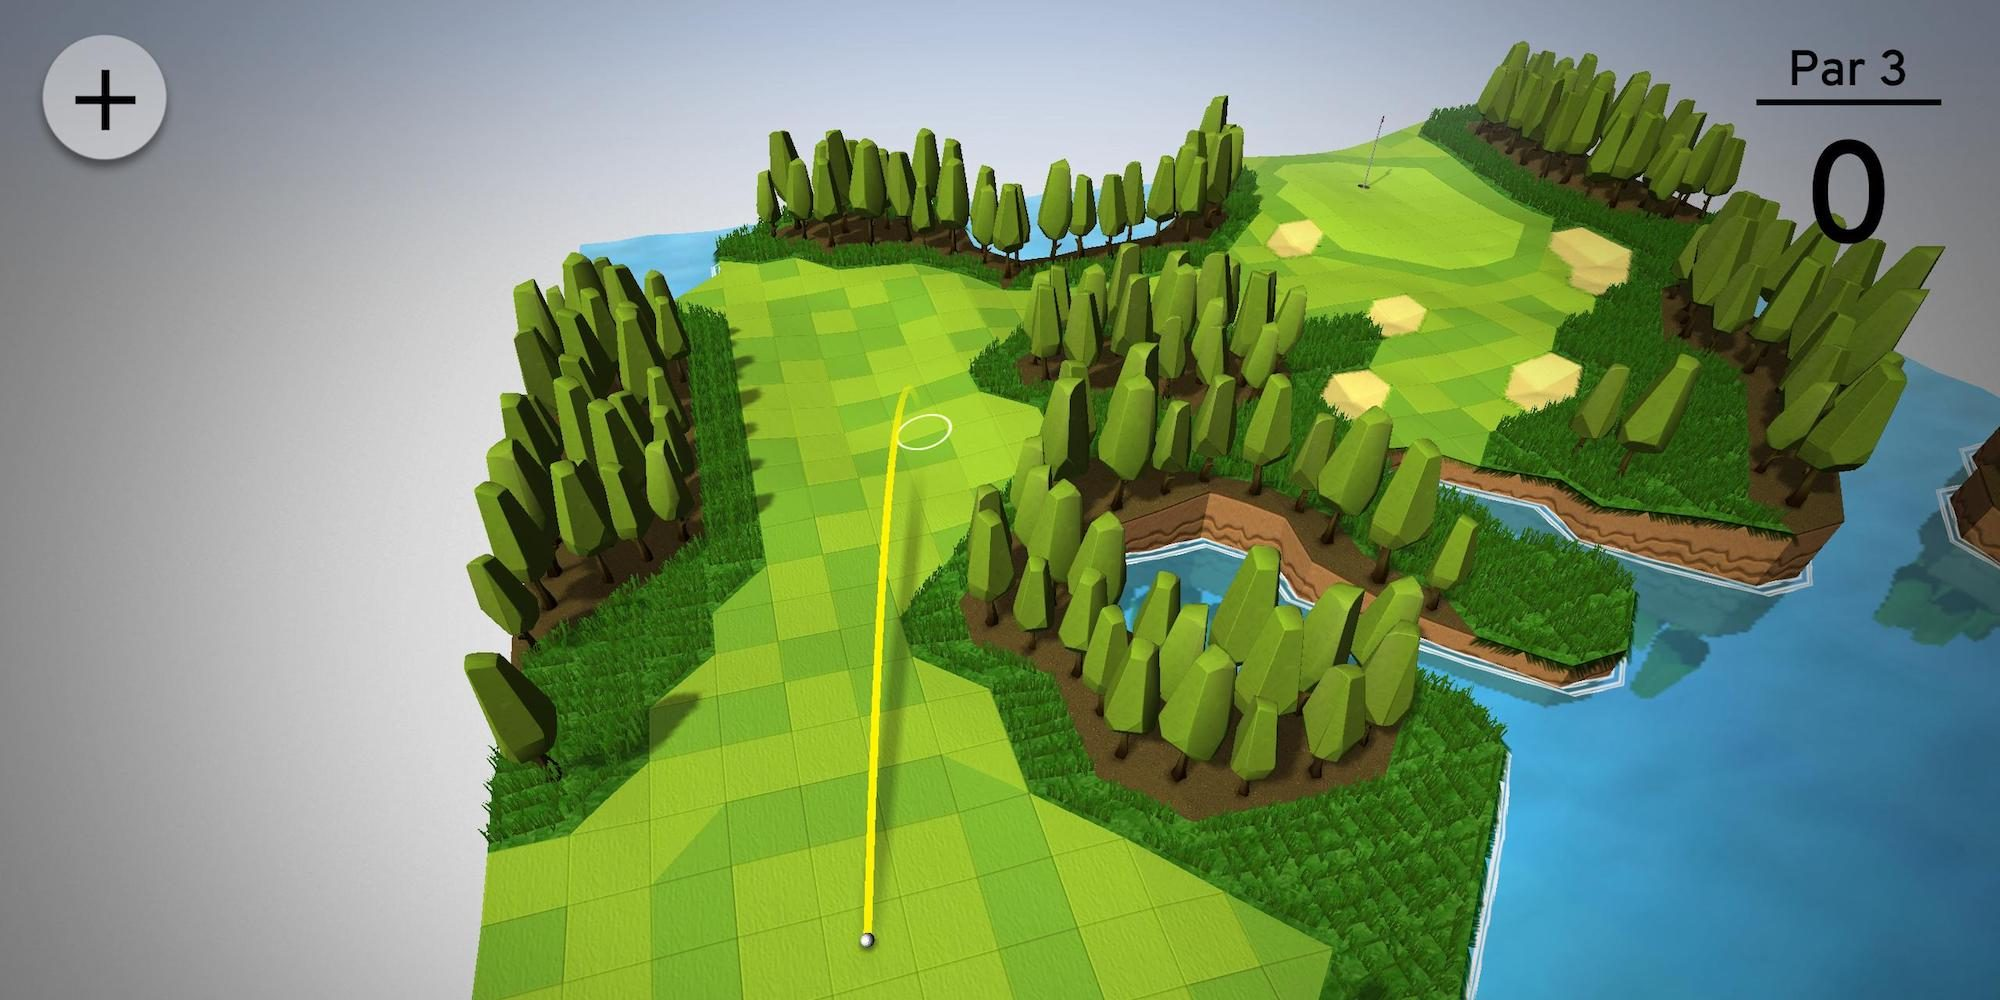 Today's Android game/app deals + freebies: OK Golf, Colorzzle, and more